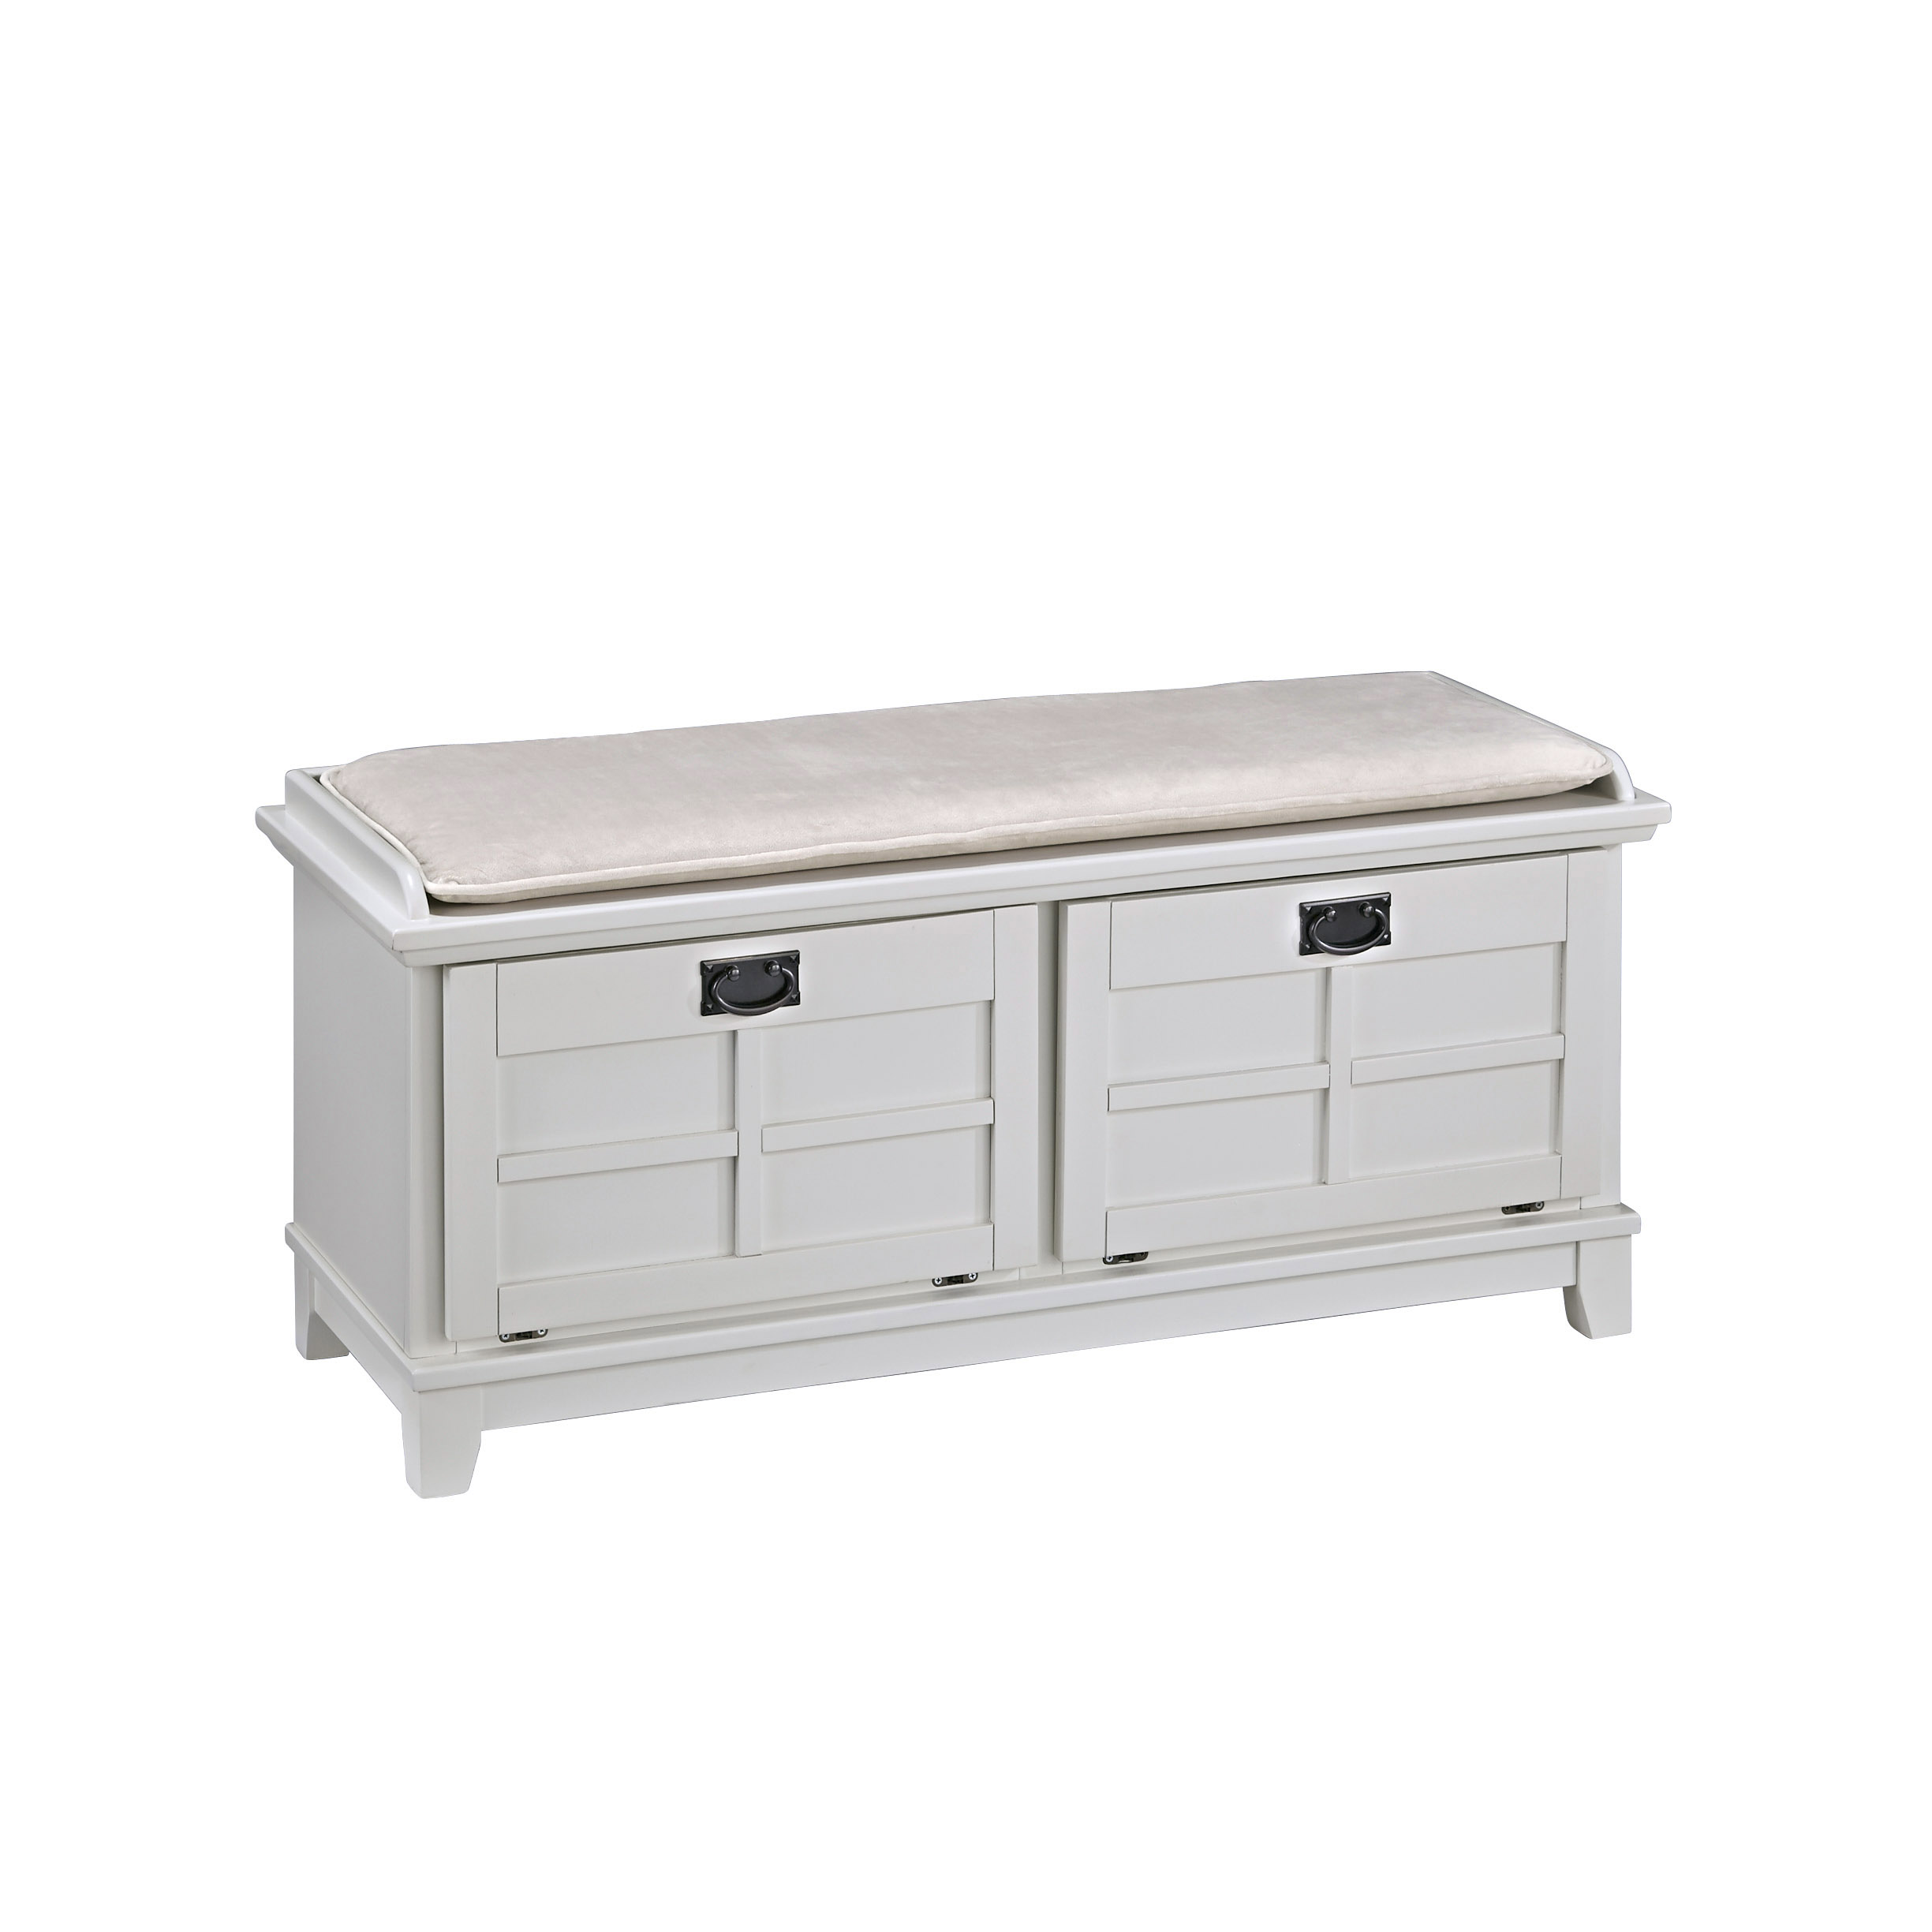 Lloyd Storage Bench by homestyles at Godby Home Furnishings